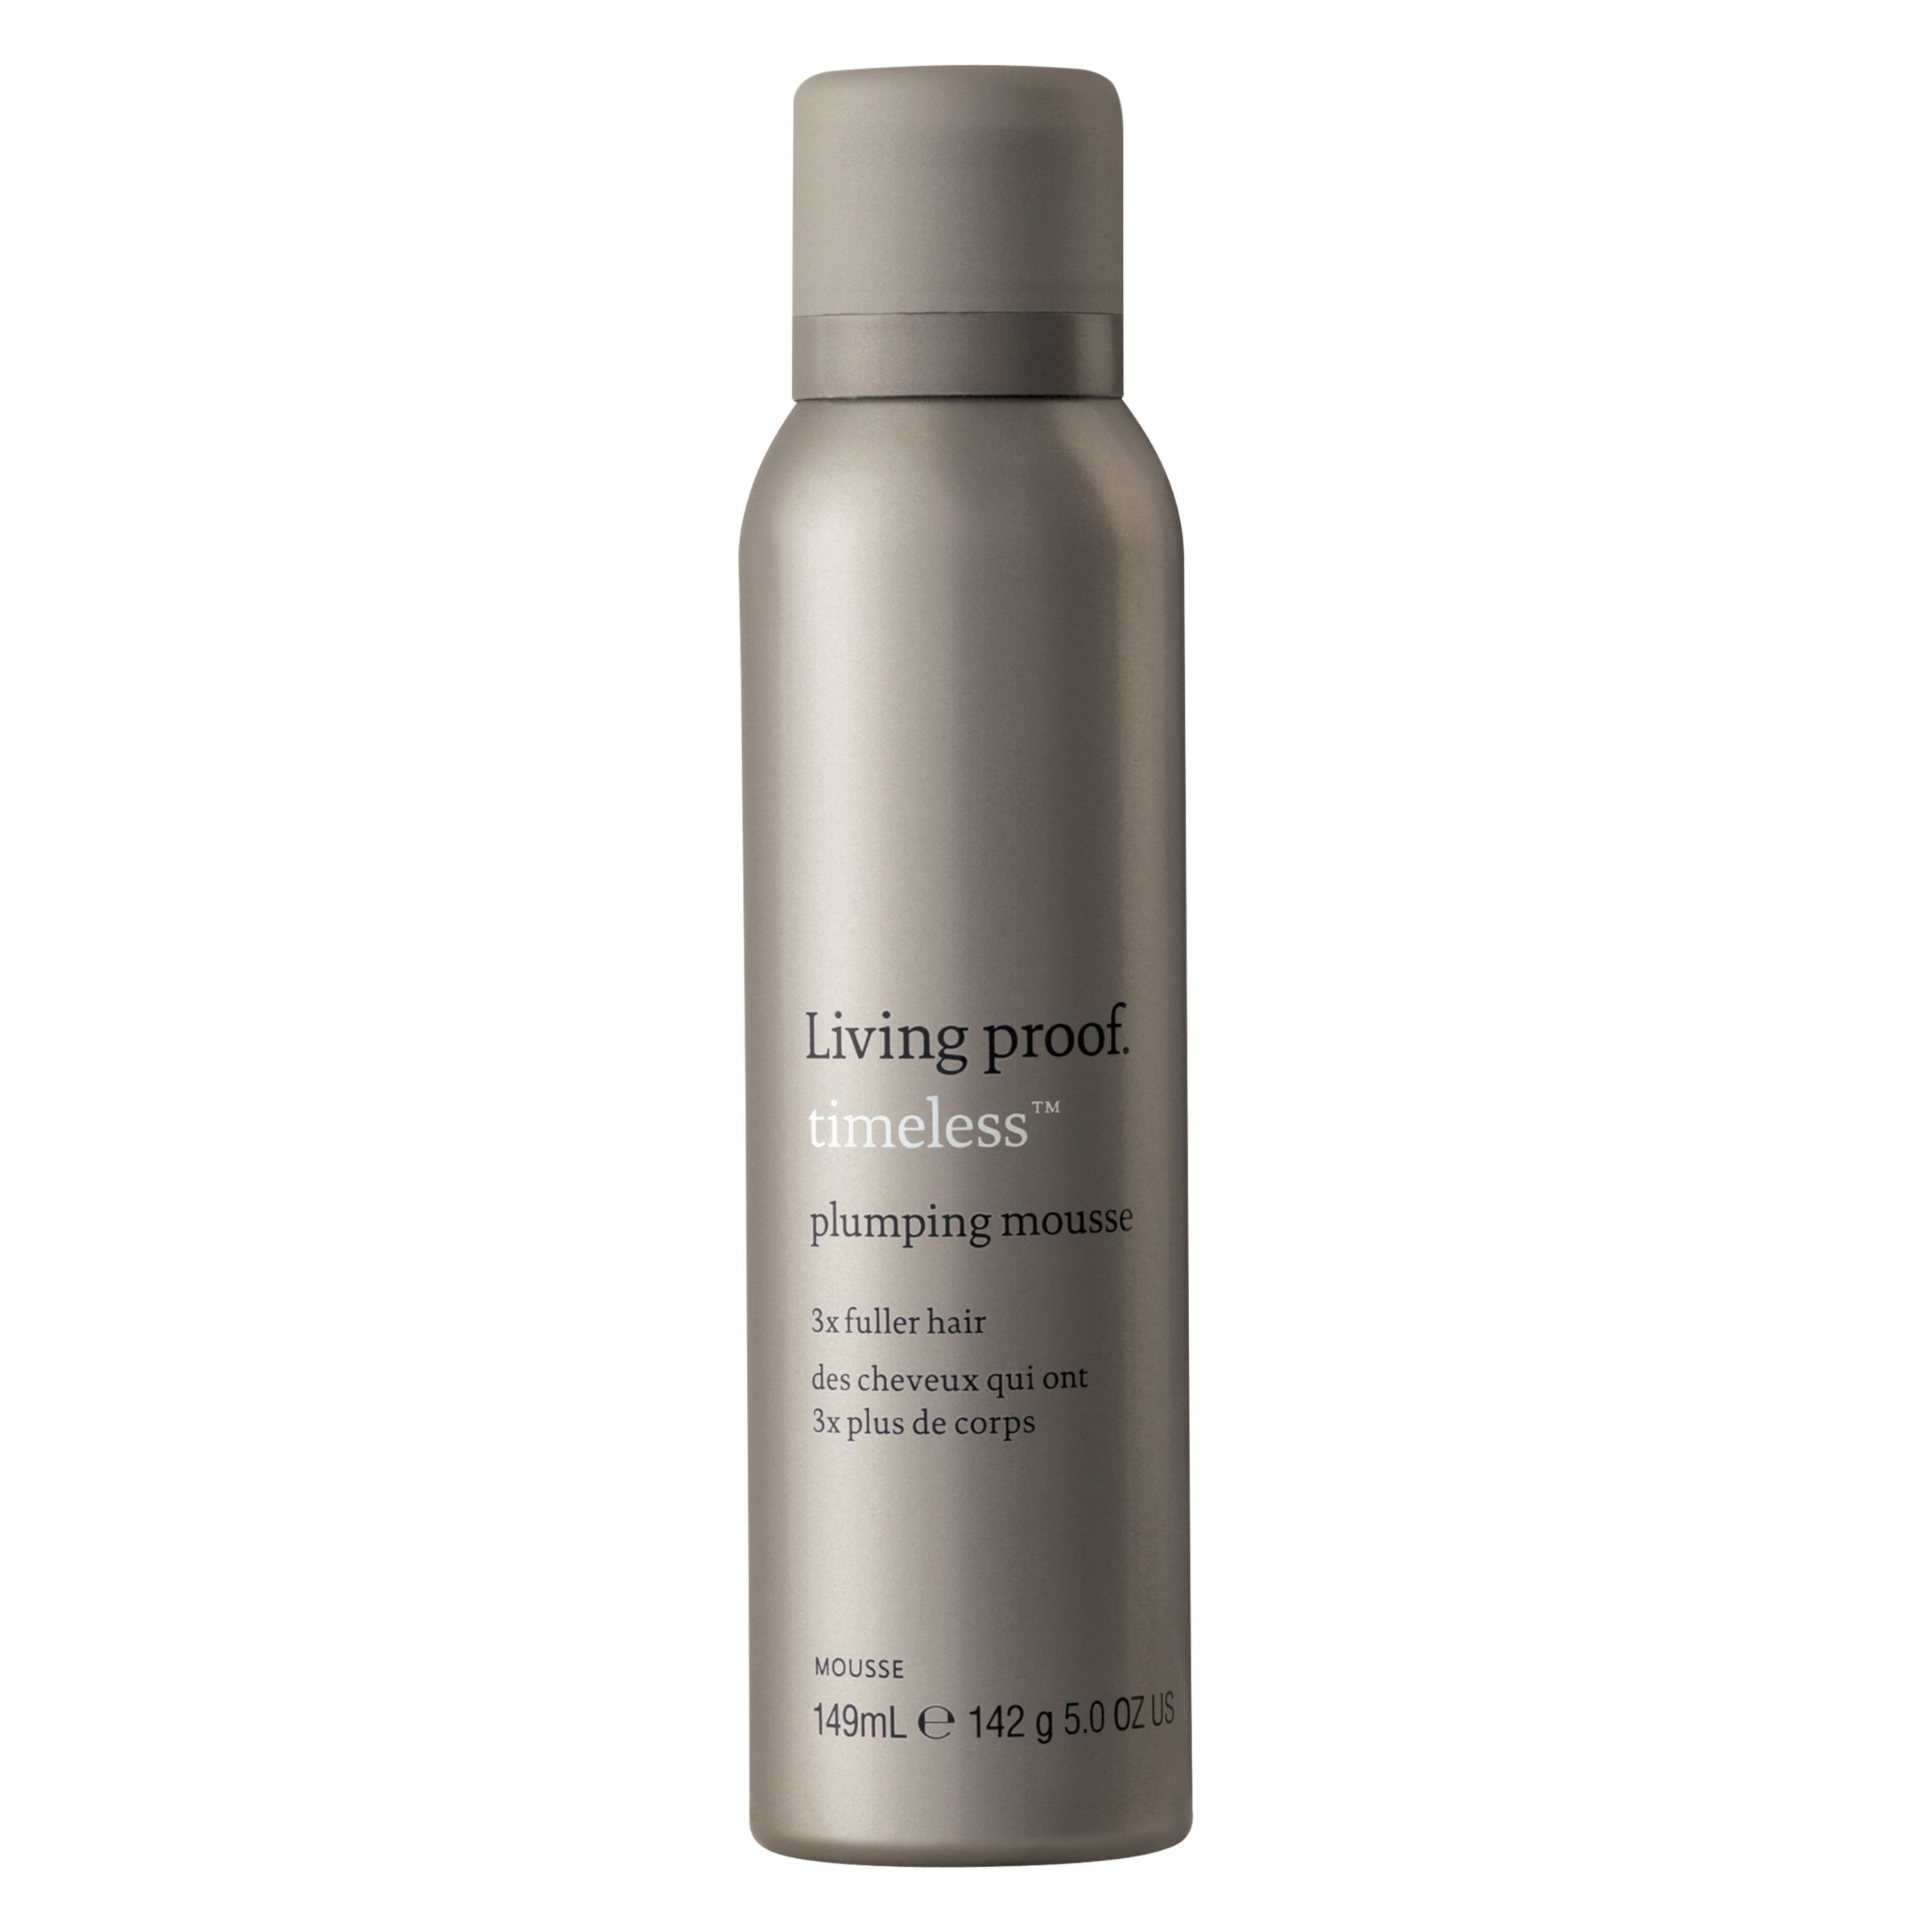 Living Proof Living Proof Timeless Plumping Mousse, 149ml